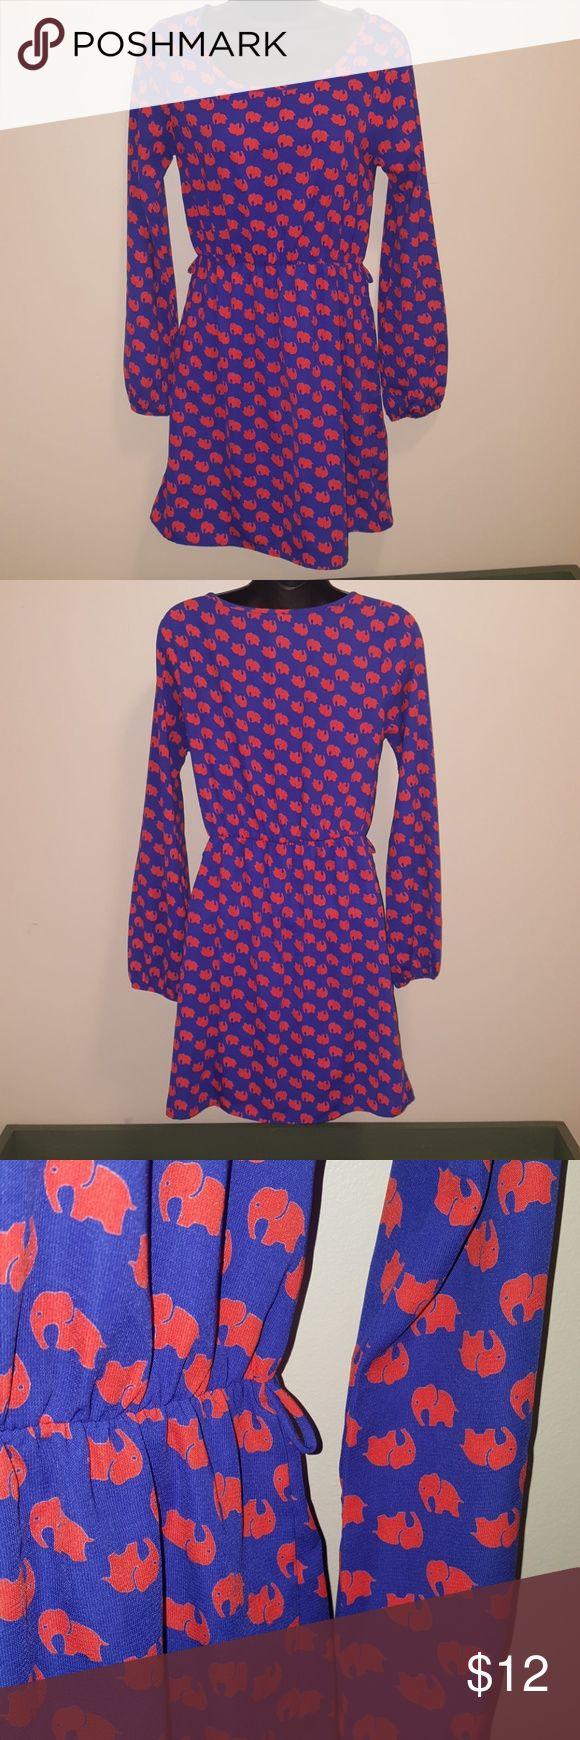 Cute Elephany pattern Everly dress small Love the pattern of this like new condition long sleeve Everly small elephant pattern dress. 100% polyester shell and lined. The waiste is elastic as well as the sleeves at the wrist. Please be aware that it is missing the belt. Everly Dresses Mini